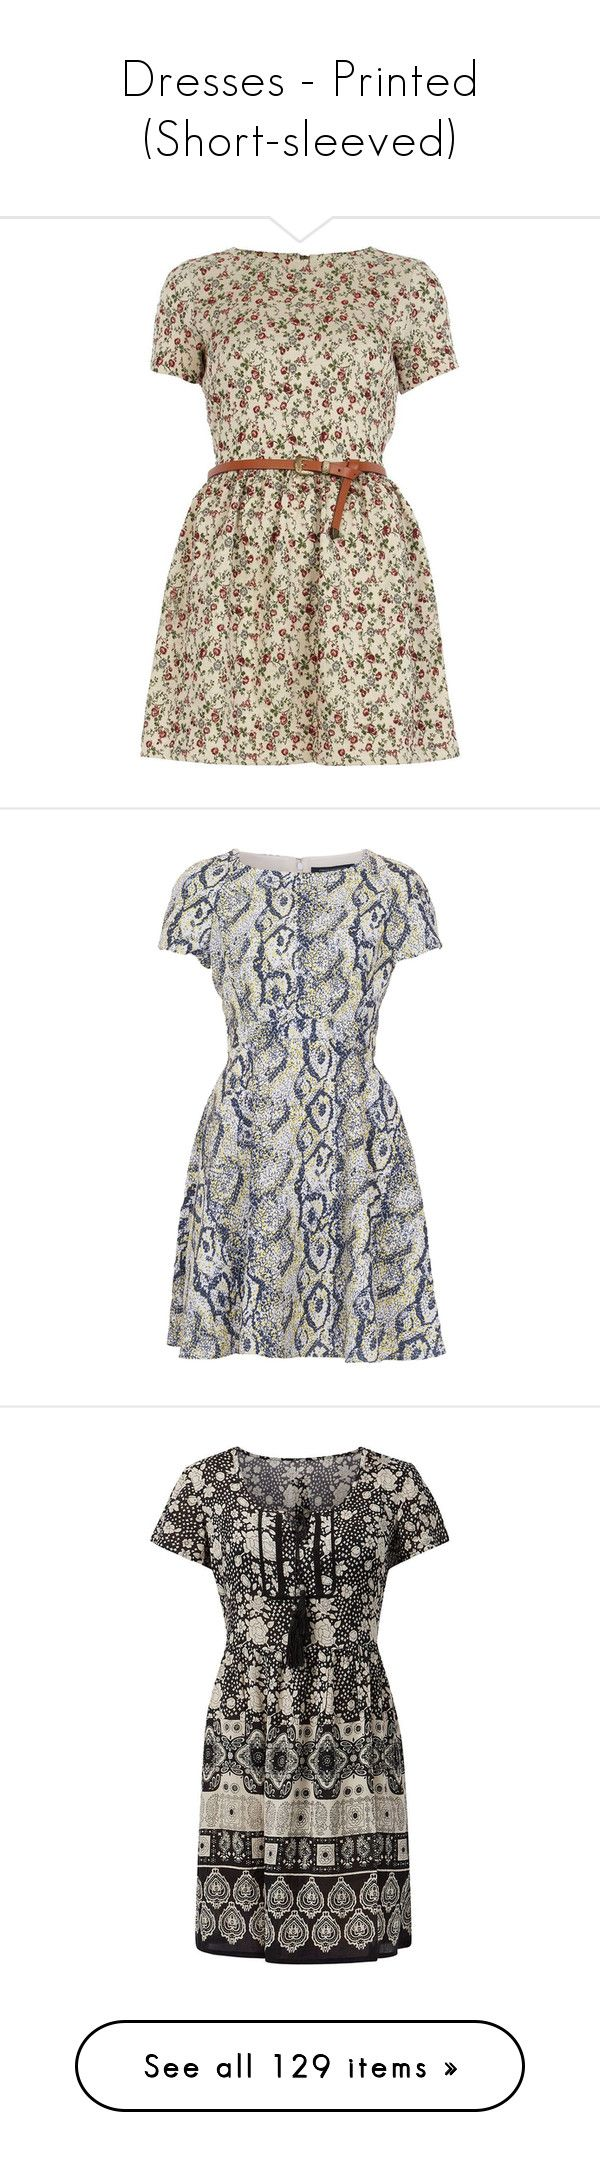 """Dresses - Printed (Short-sleeved)"" by giovanna1995 ❤ liked on Polyvore featuring dresses, vestidos, robes, vestiti, short sleeve dress, floral dresses, floral skater dresses, cream floral dress, short sleeve floral dress and long-sleeve fit and flare dresses"